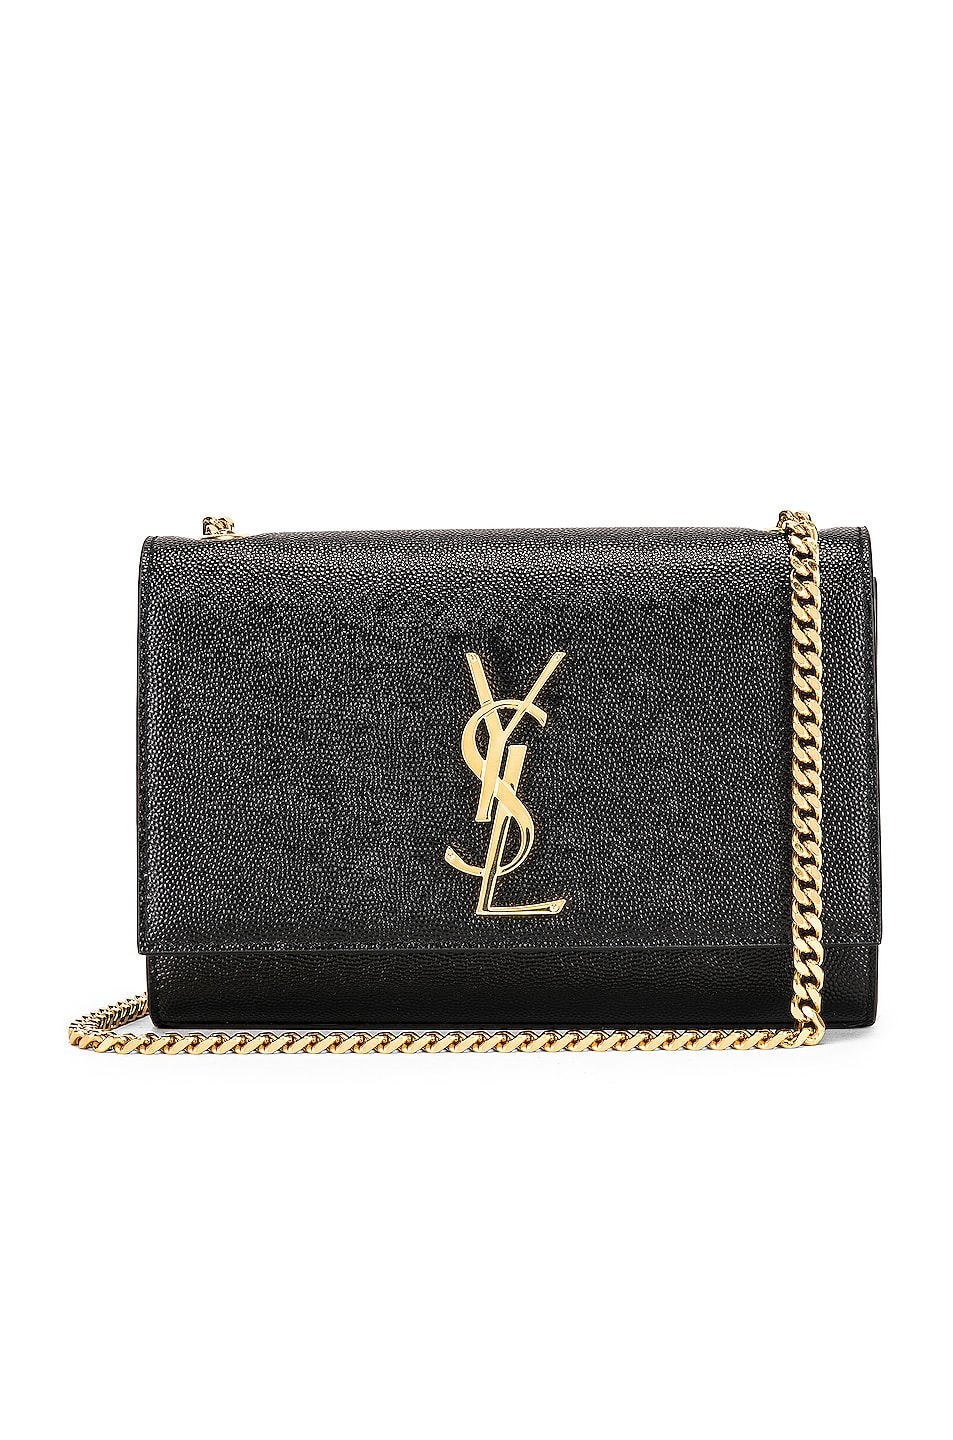 Image 1 of Saint Laurent Small Kate Monogramme Chain Bag in Black